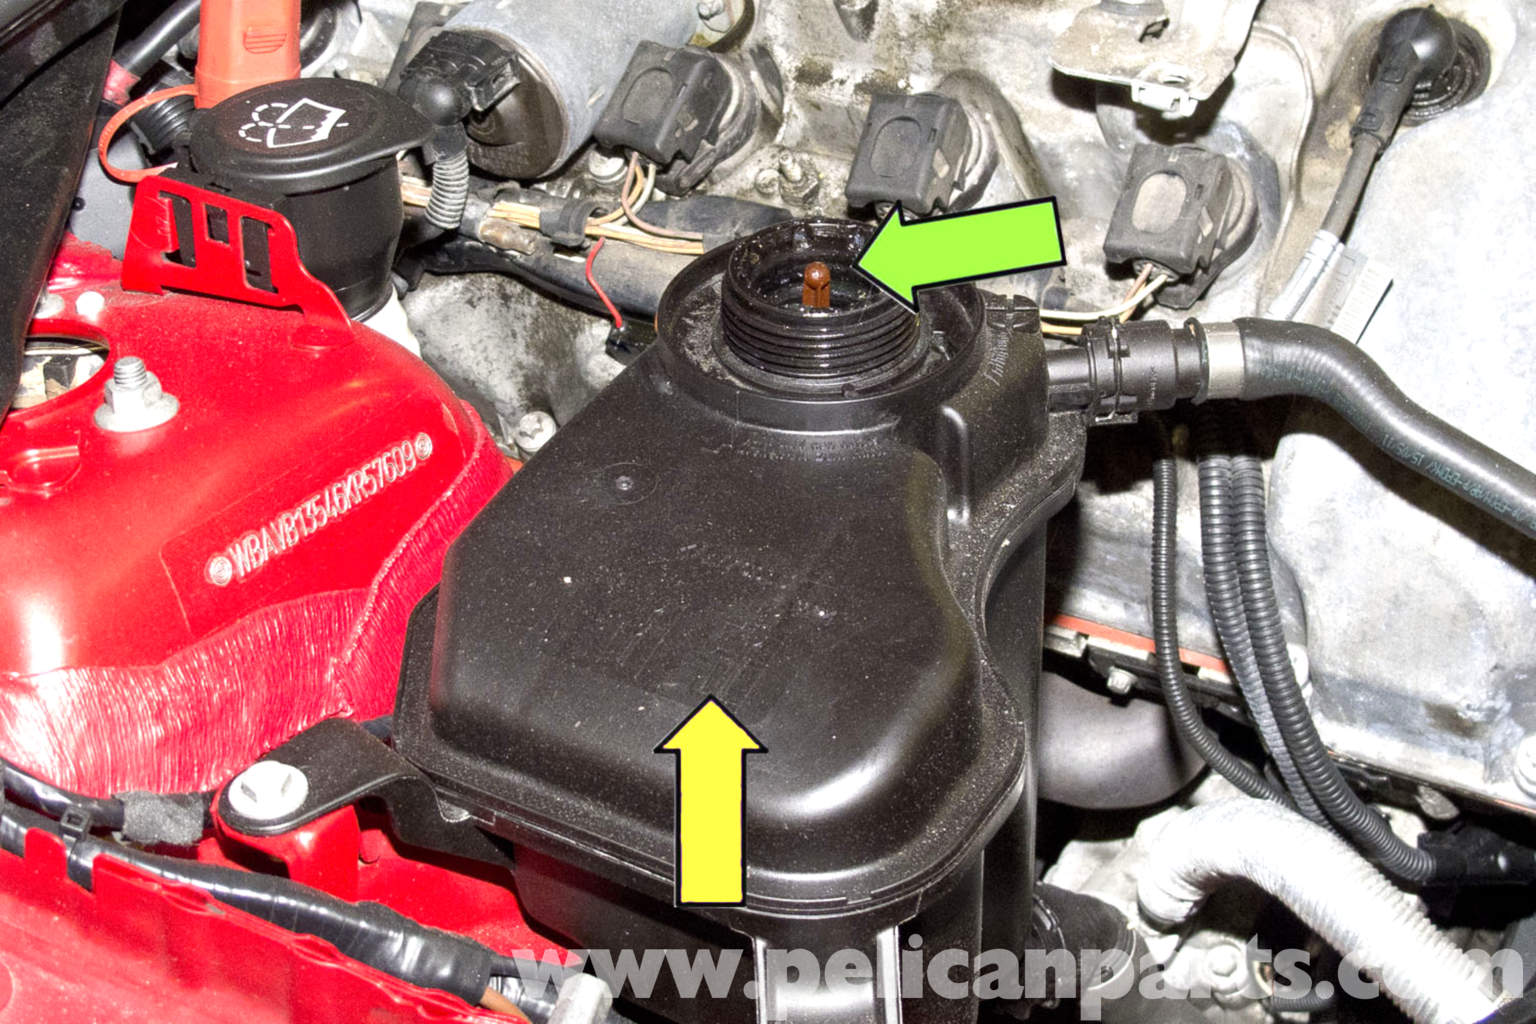 WATER Draining Filling Cooling System in addition  as well TRANS Automatic Trans Fluid Replacing likewise 55654 Diy Guide Replacing Your Fuel Tank Breather Valve Purge Valve further Belt Drive Alternator Ac Power Steering. on bmw 335i parts diagram